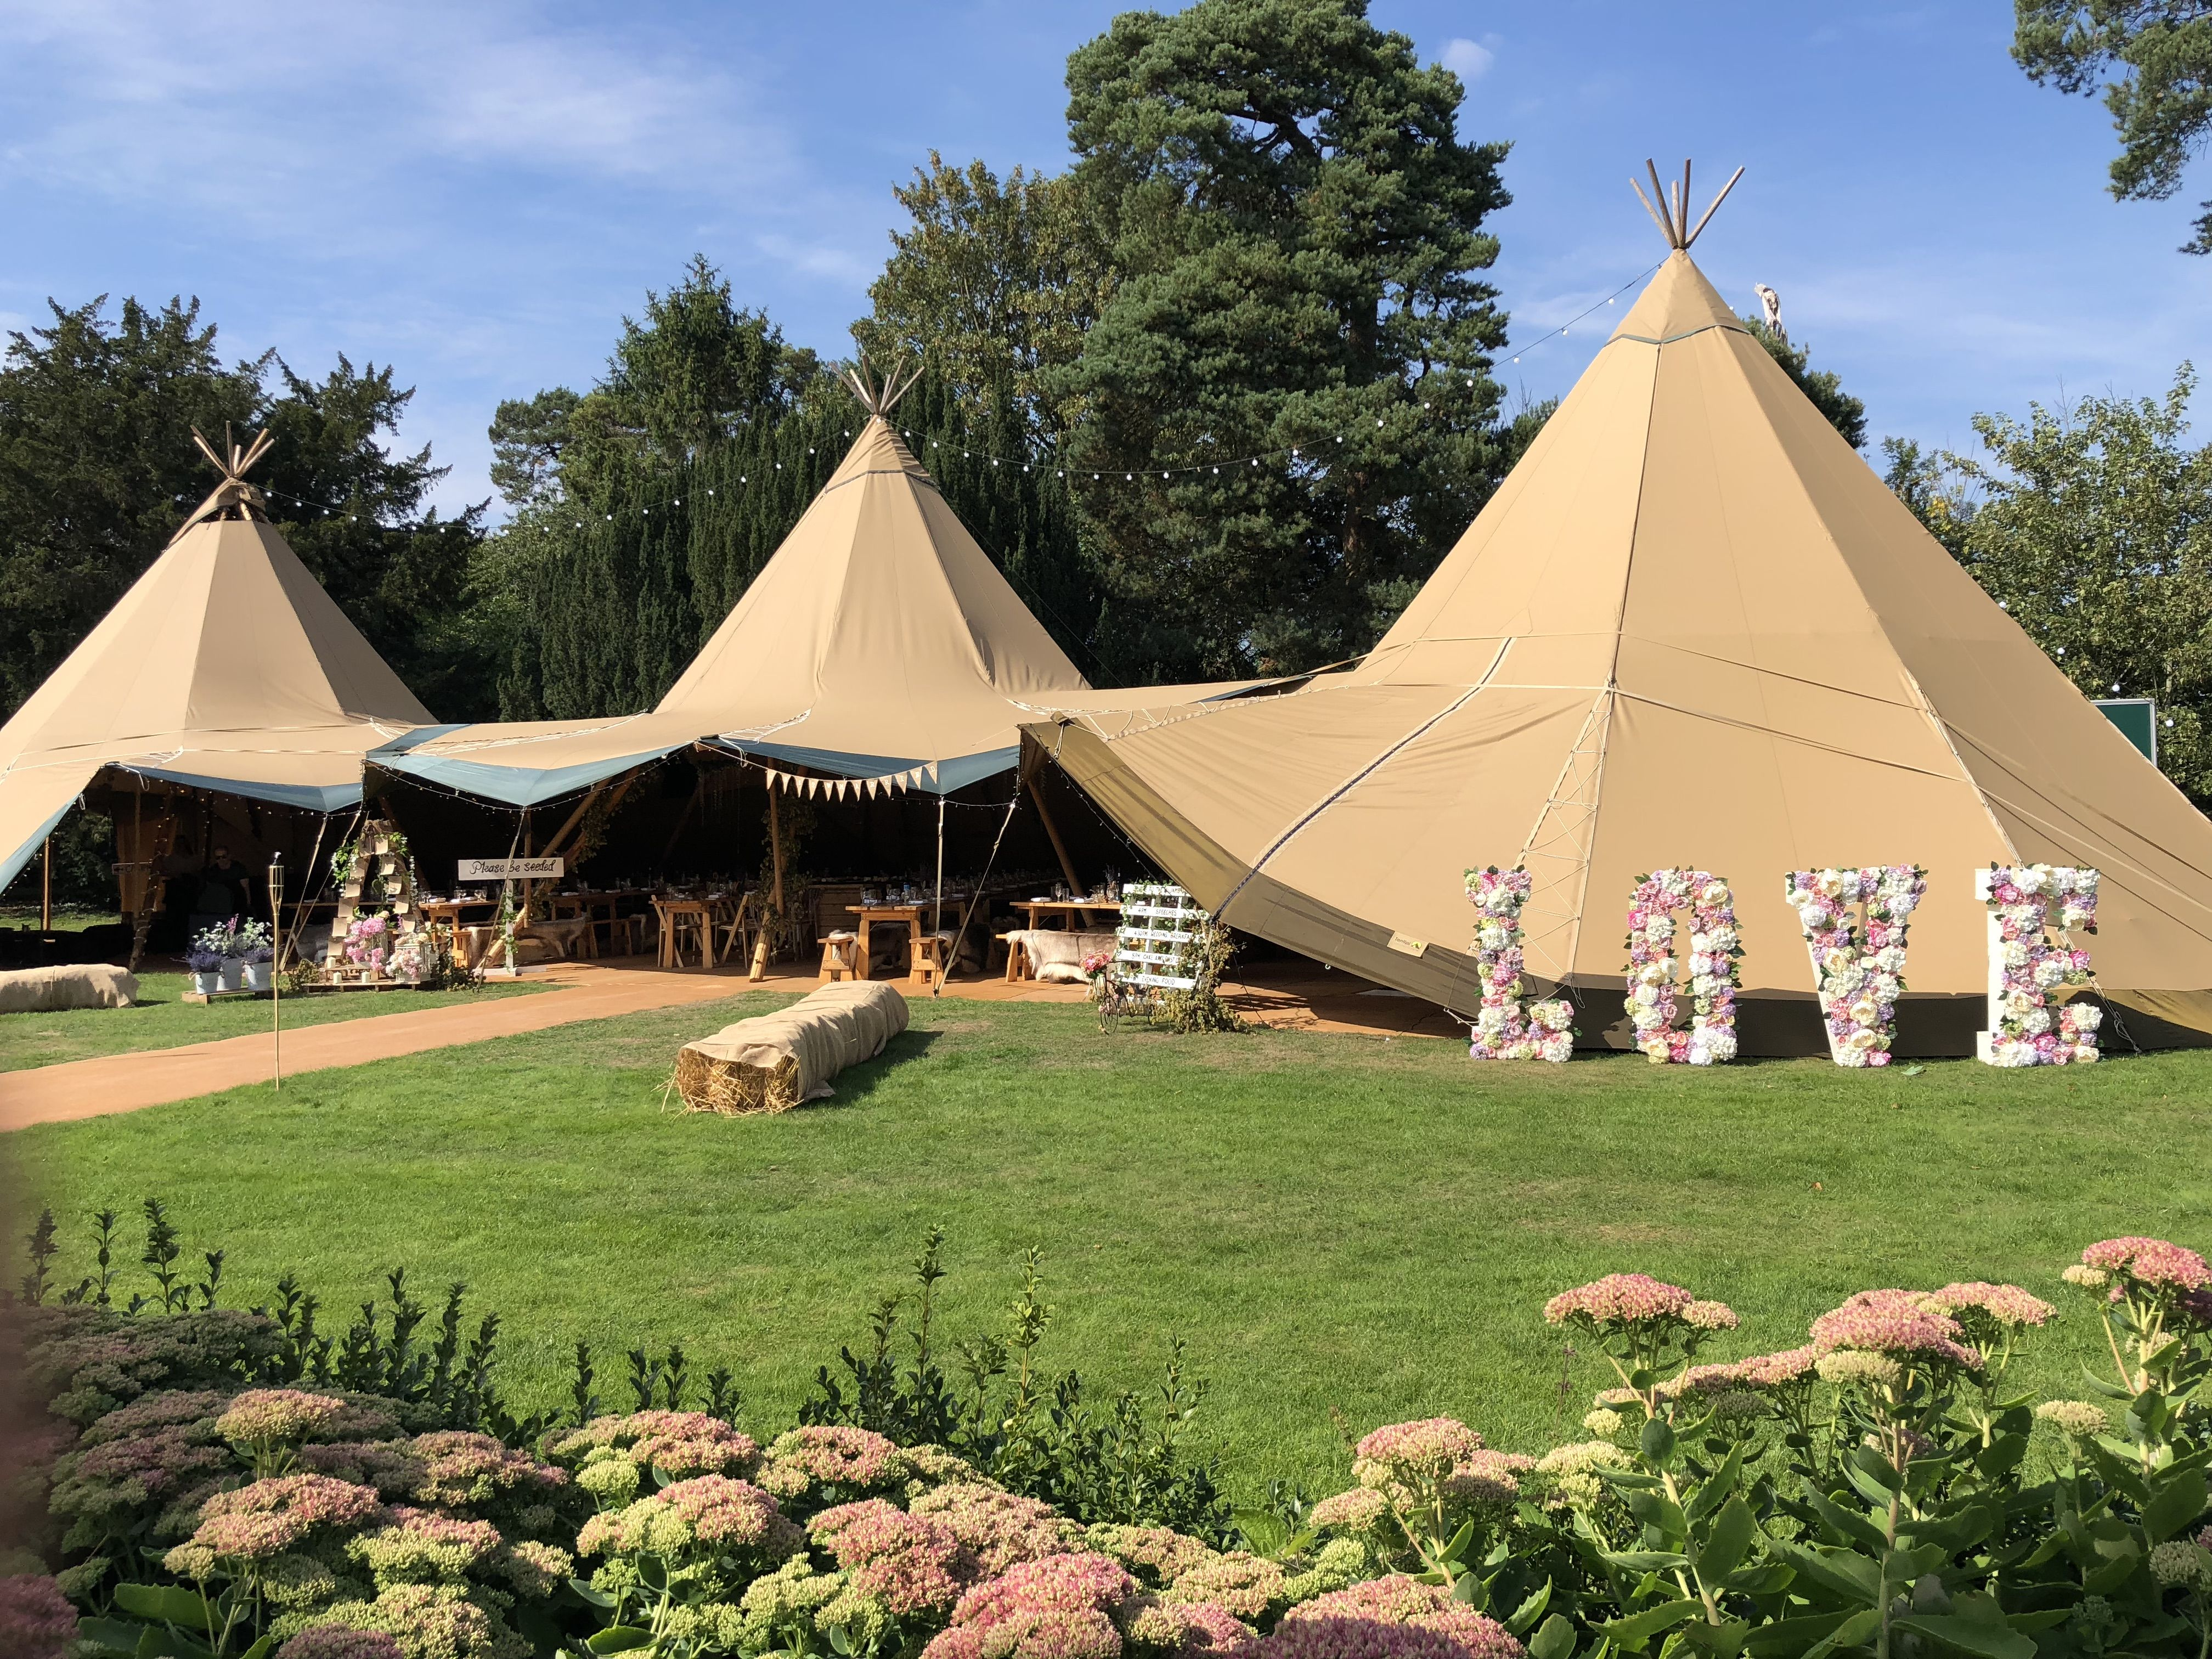 Elite Tents tipis at Oldberrow House (With images) | Tent ...